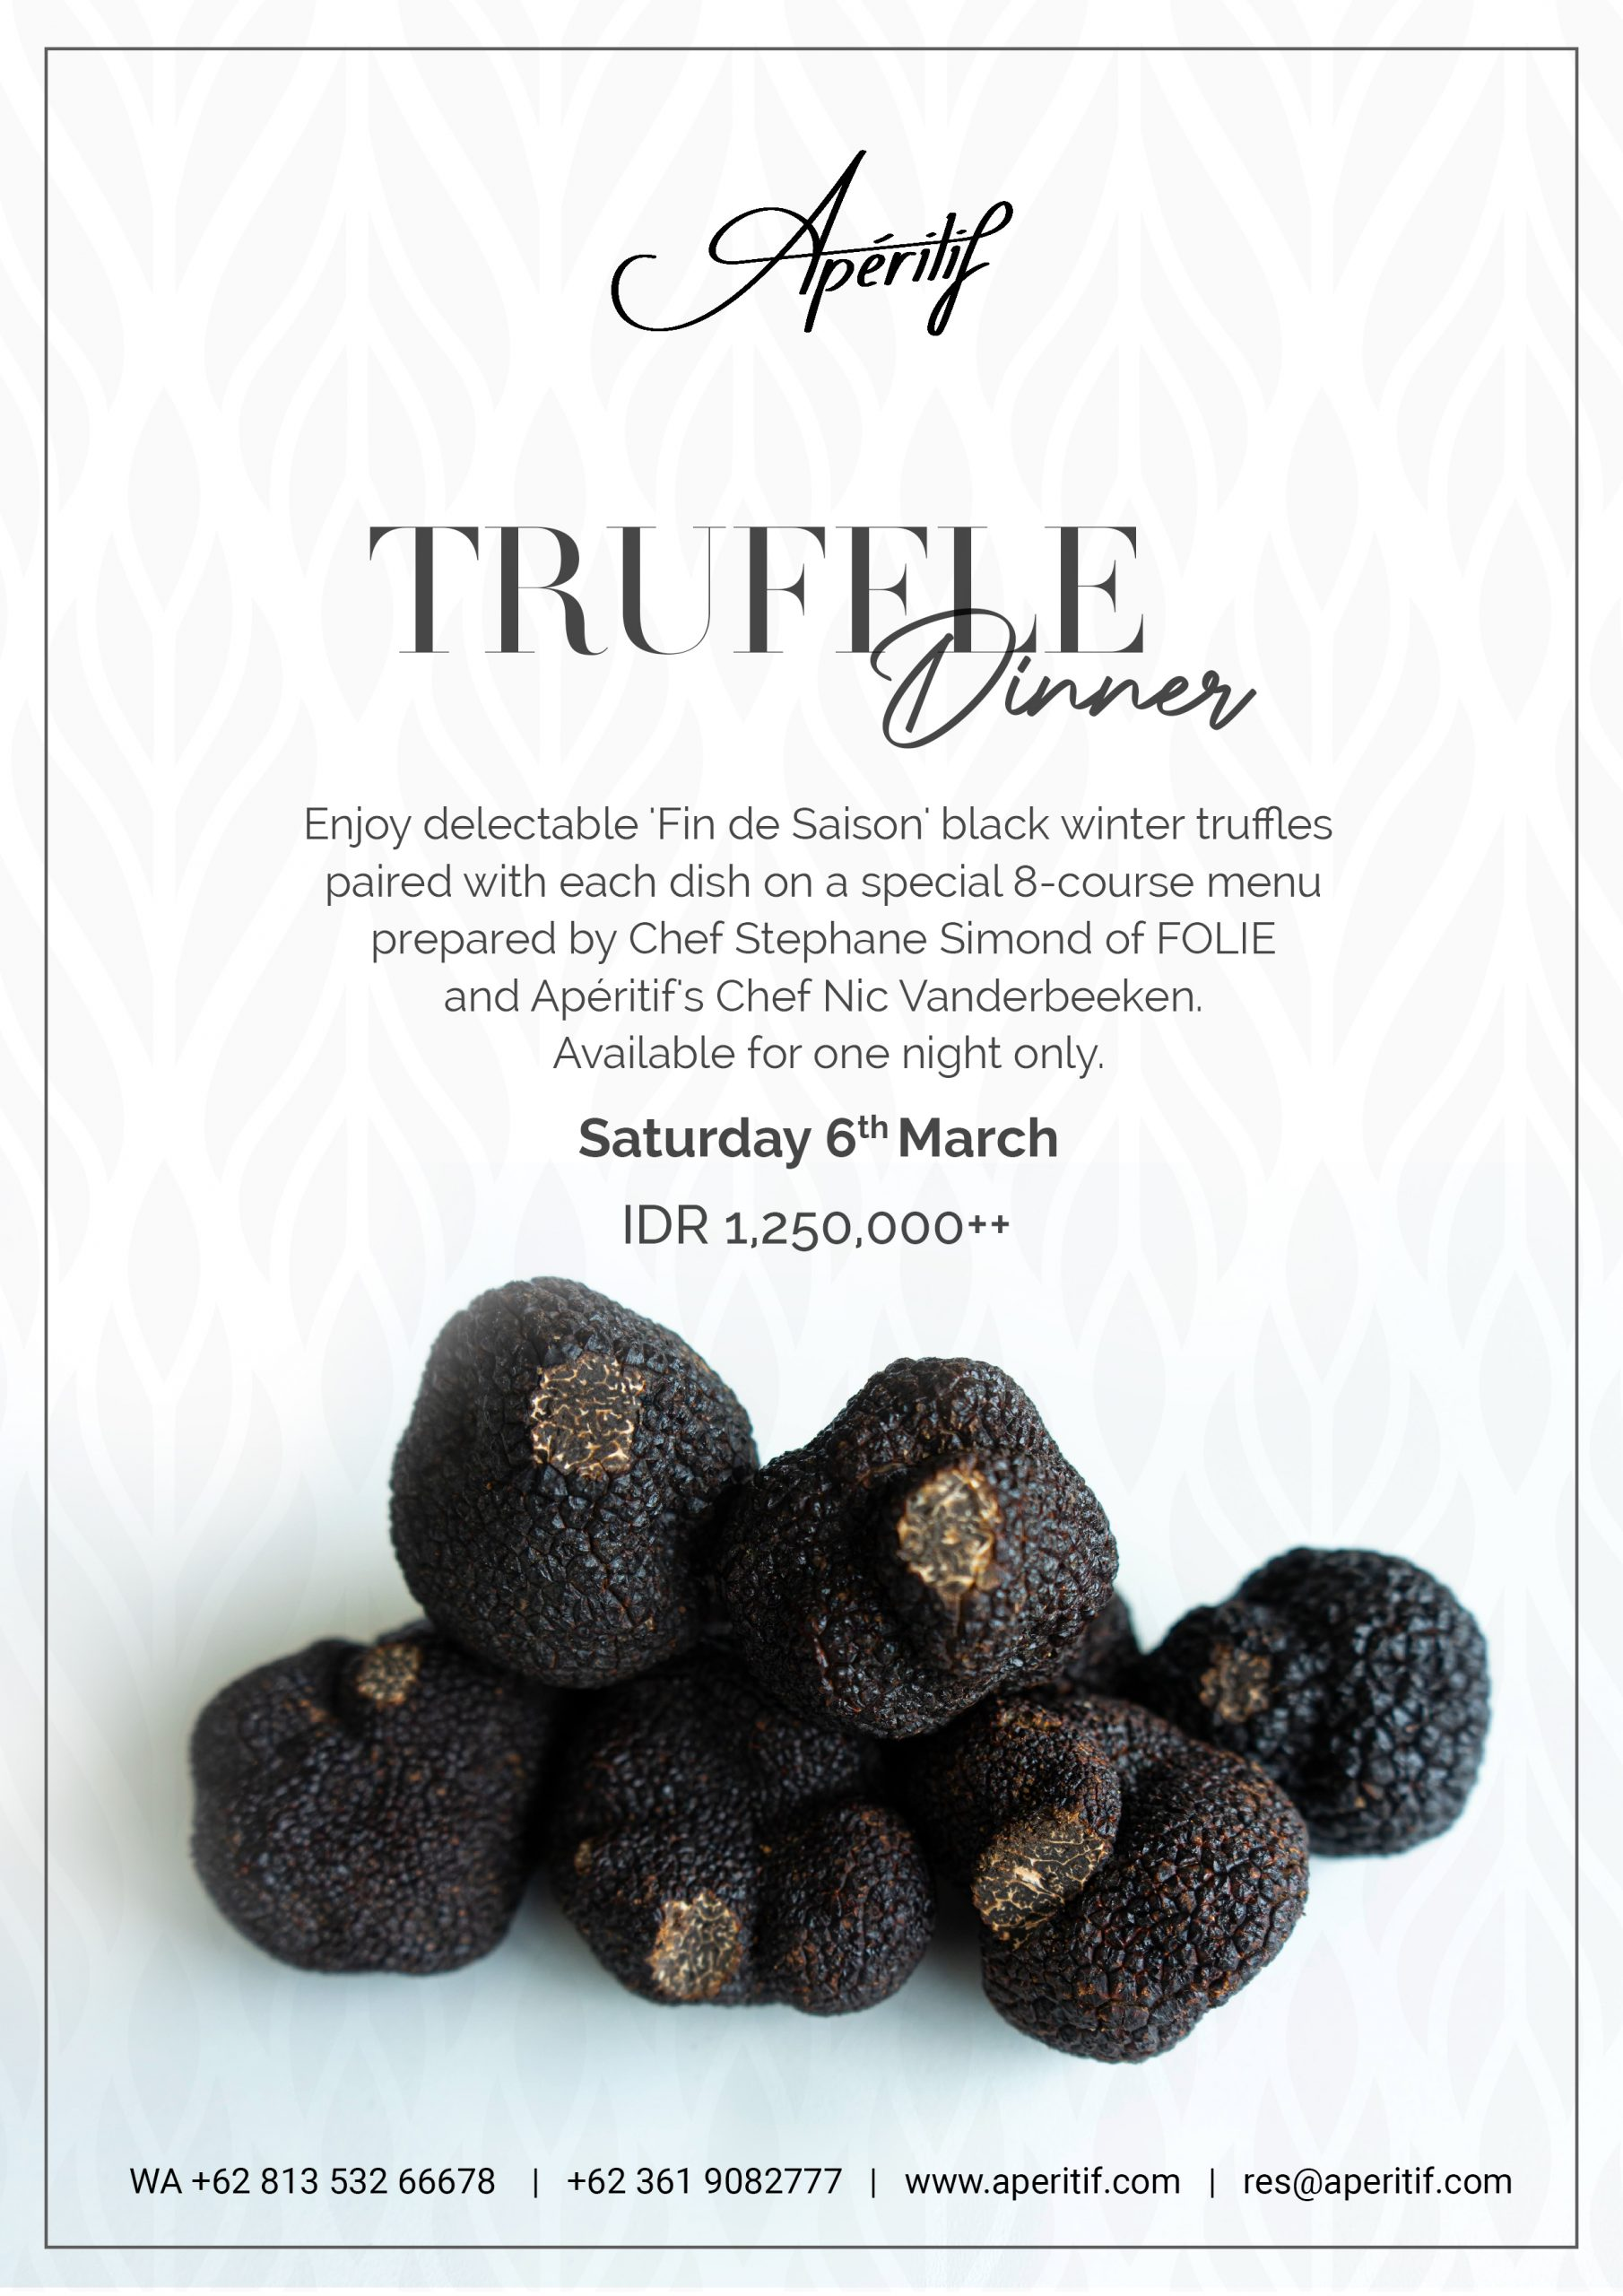 https://highend-traveller.com/relish-imported-fin-de-saison-black-winter-truffles-at-aperitifs-truffle-dinner-on-6-march/